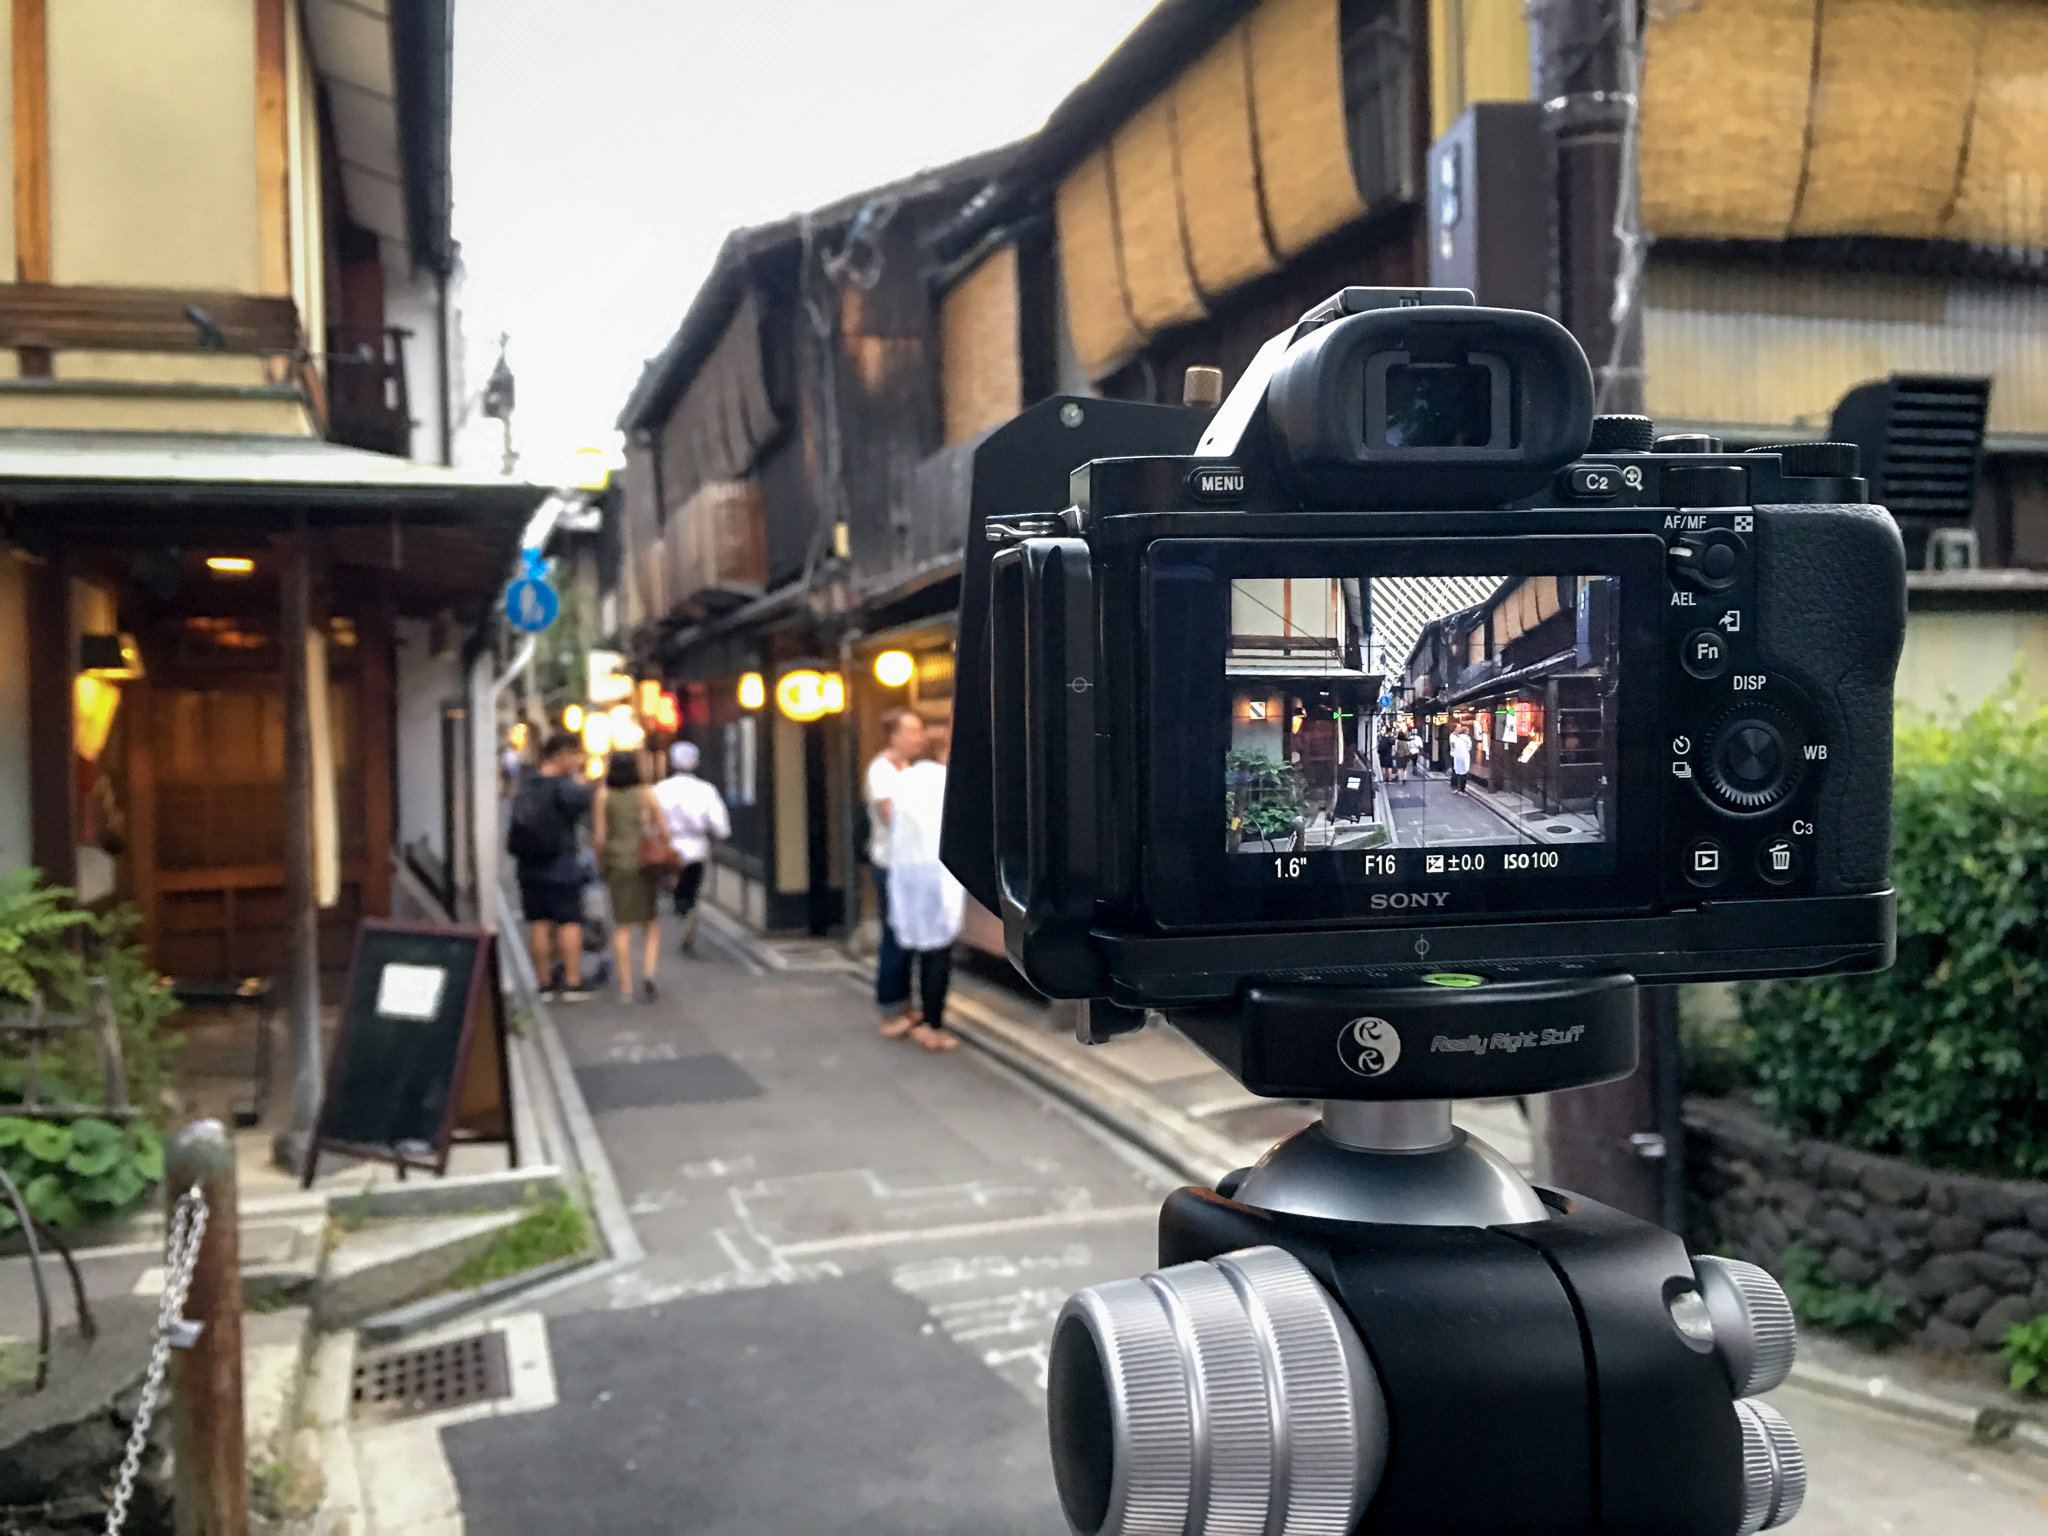 Behind the scenes in Kyoto. Check back later this week for processing notes on a photo from this shoot.